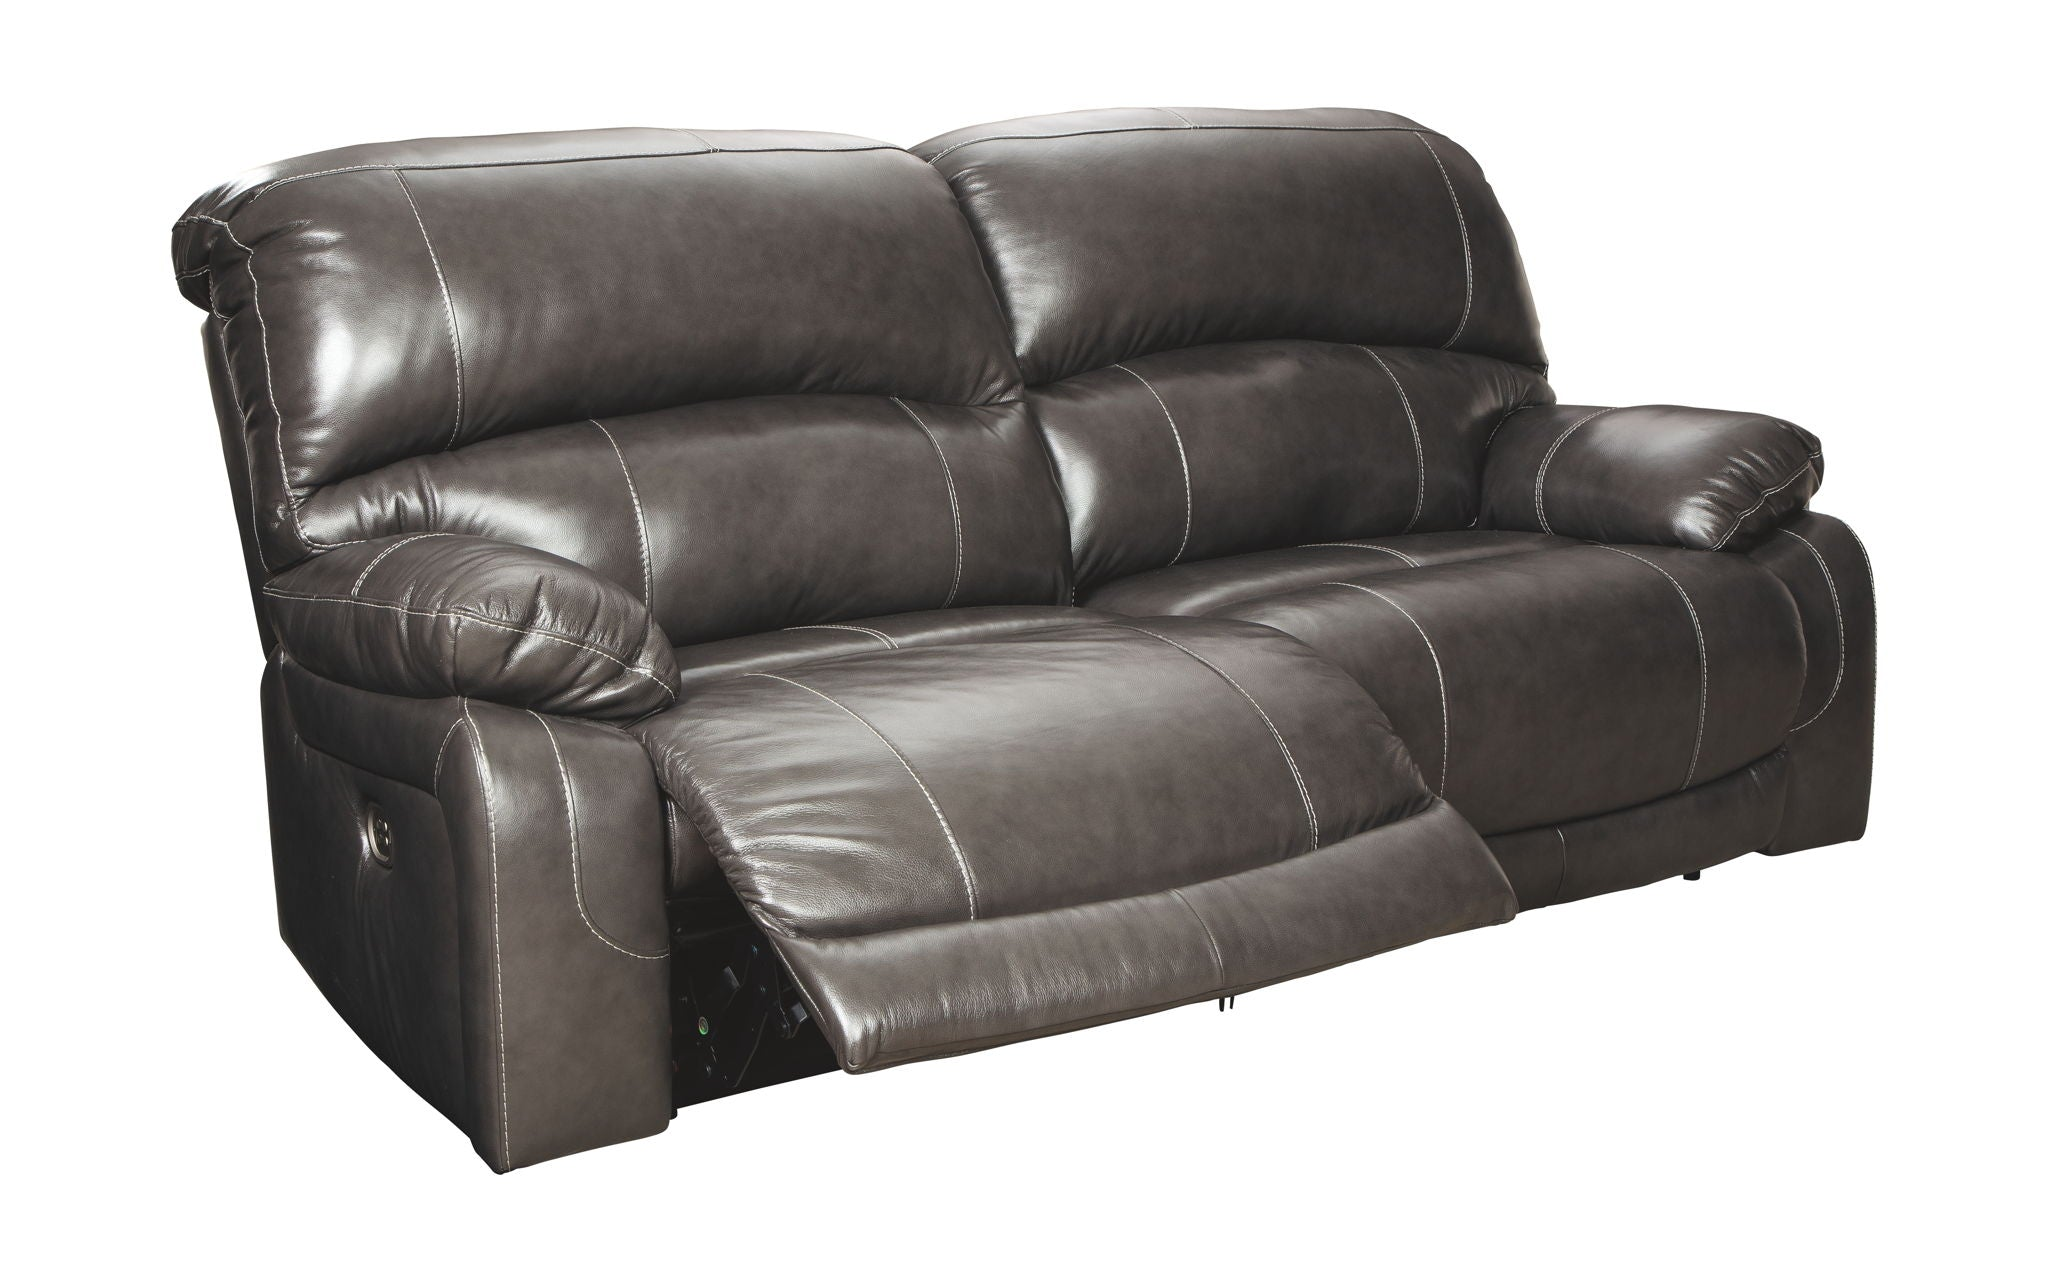 Hallstrung Power Reclining Sofa